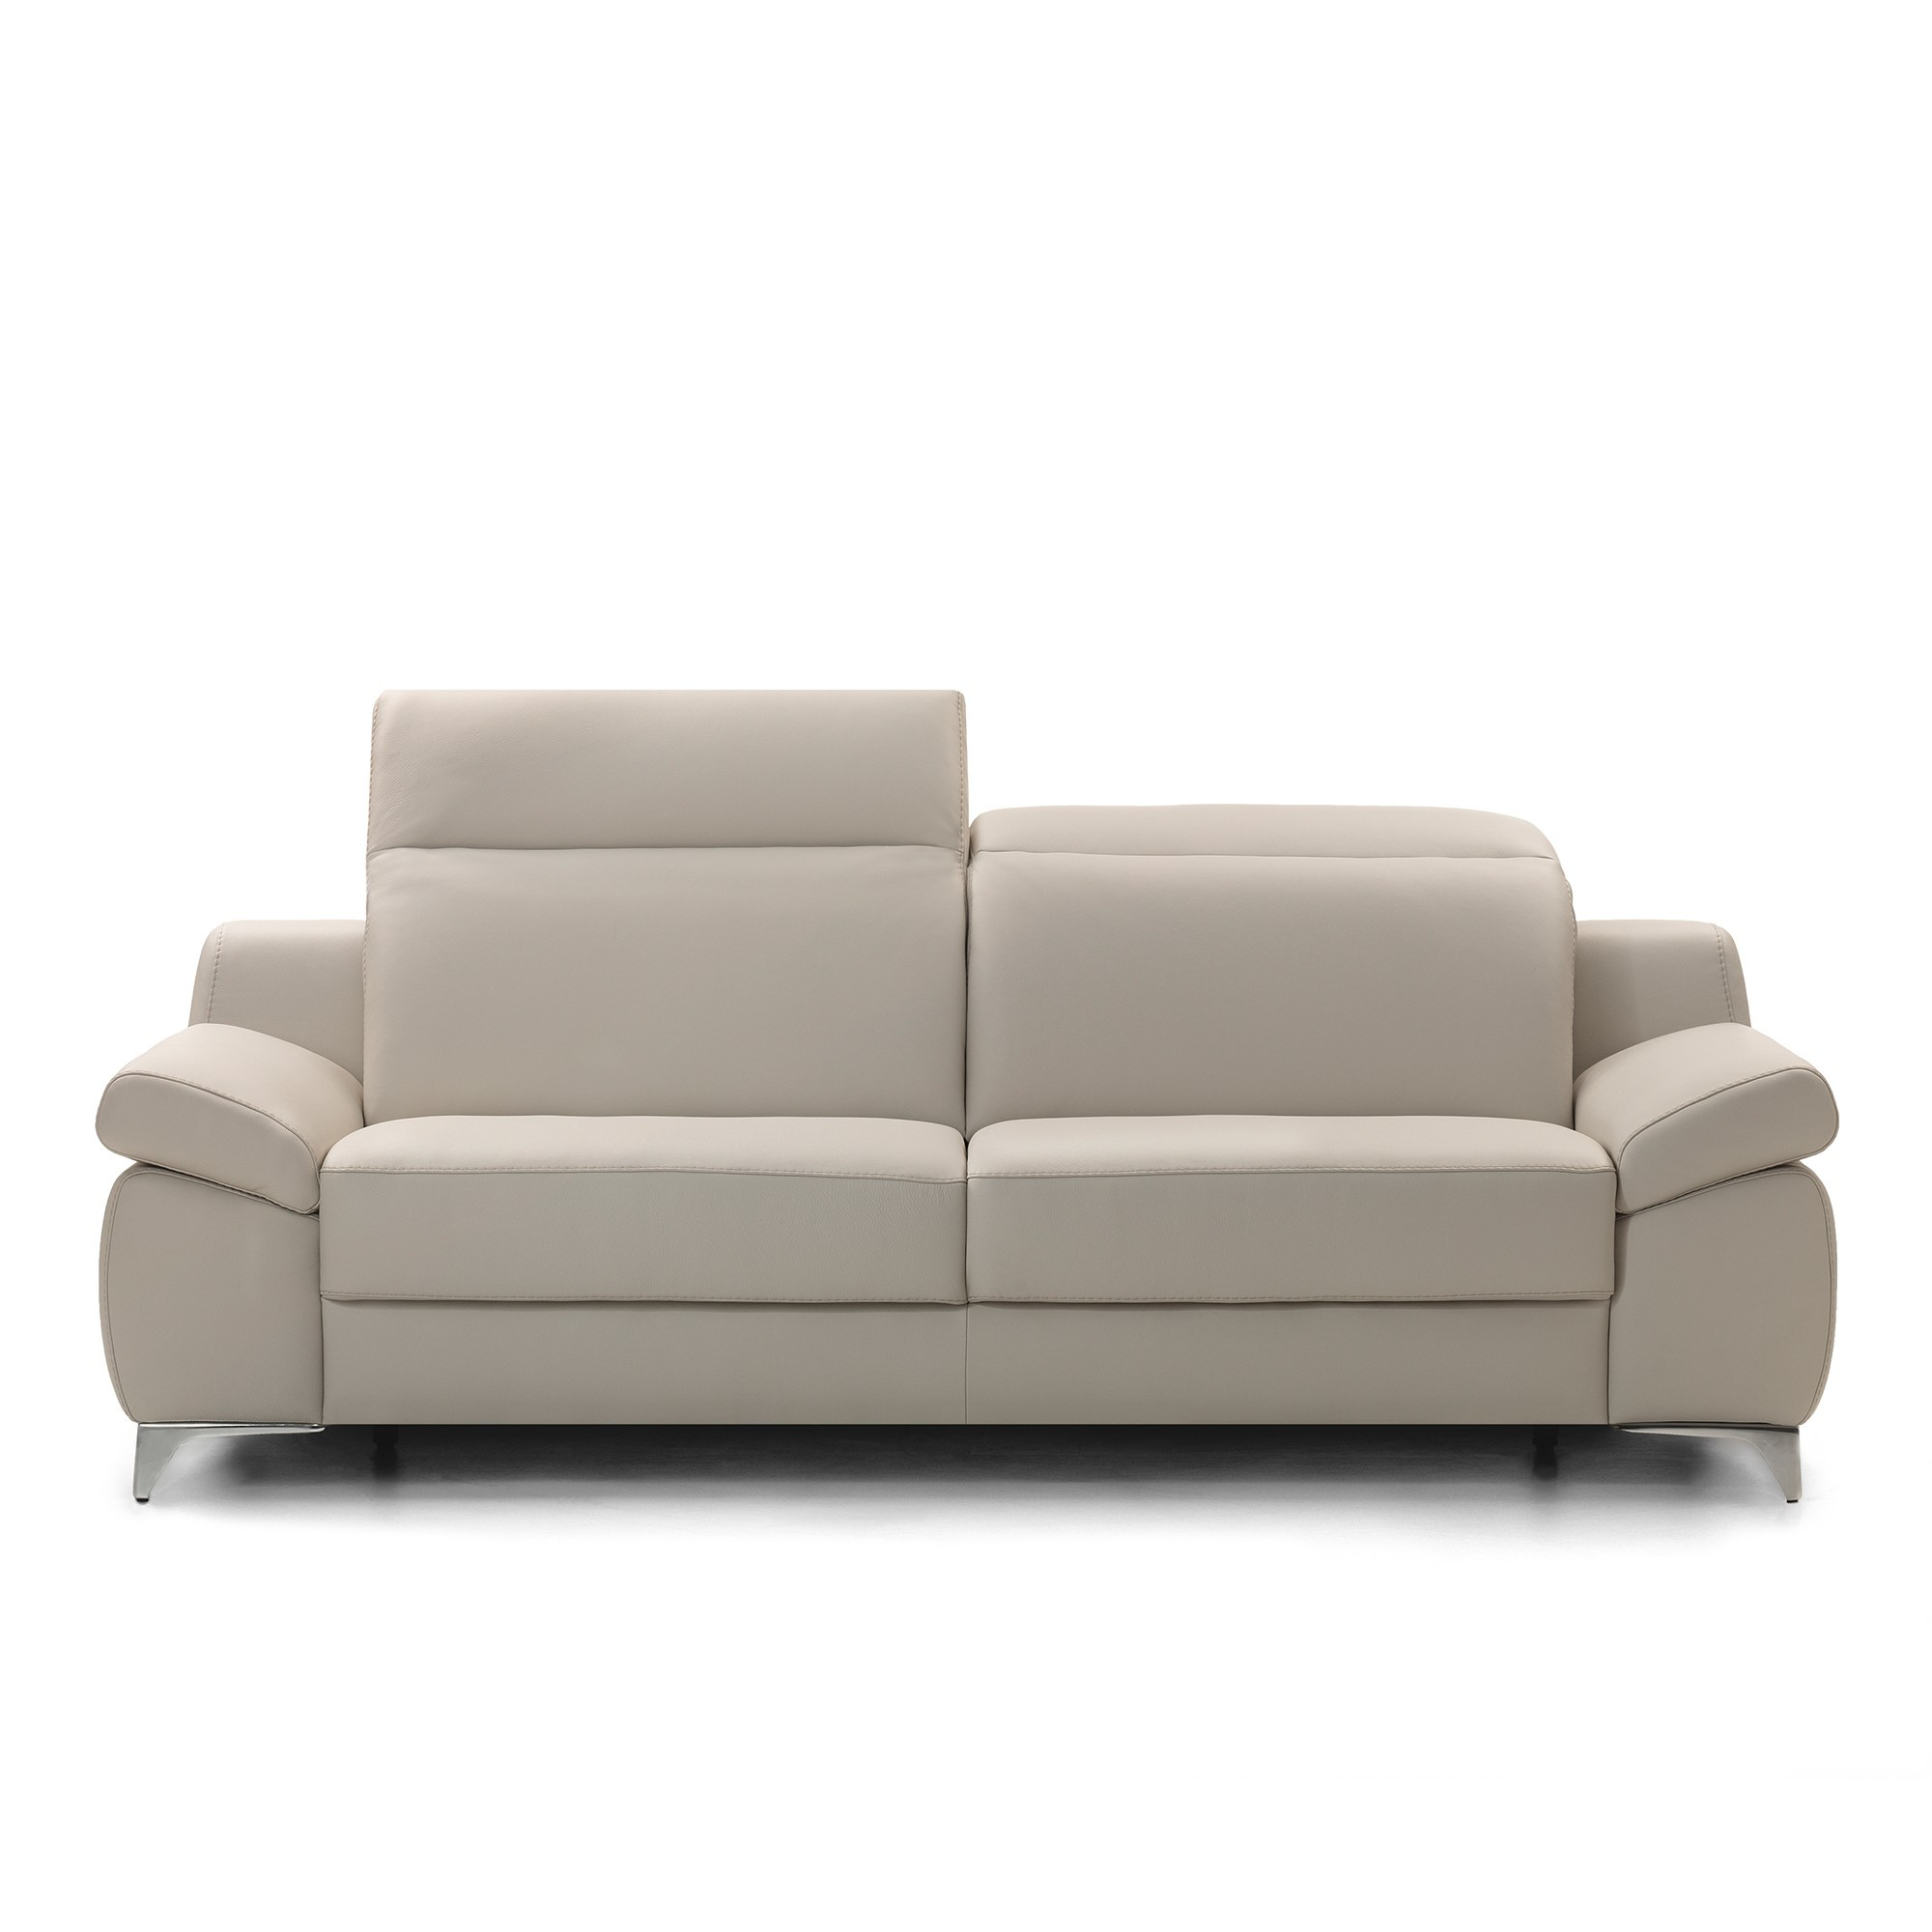 Rom Wren Power Recliner Sofa Large Recliner Sofas